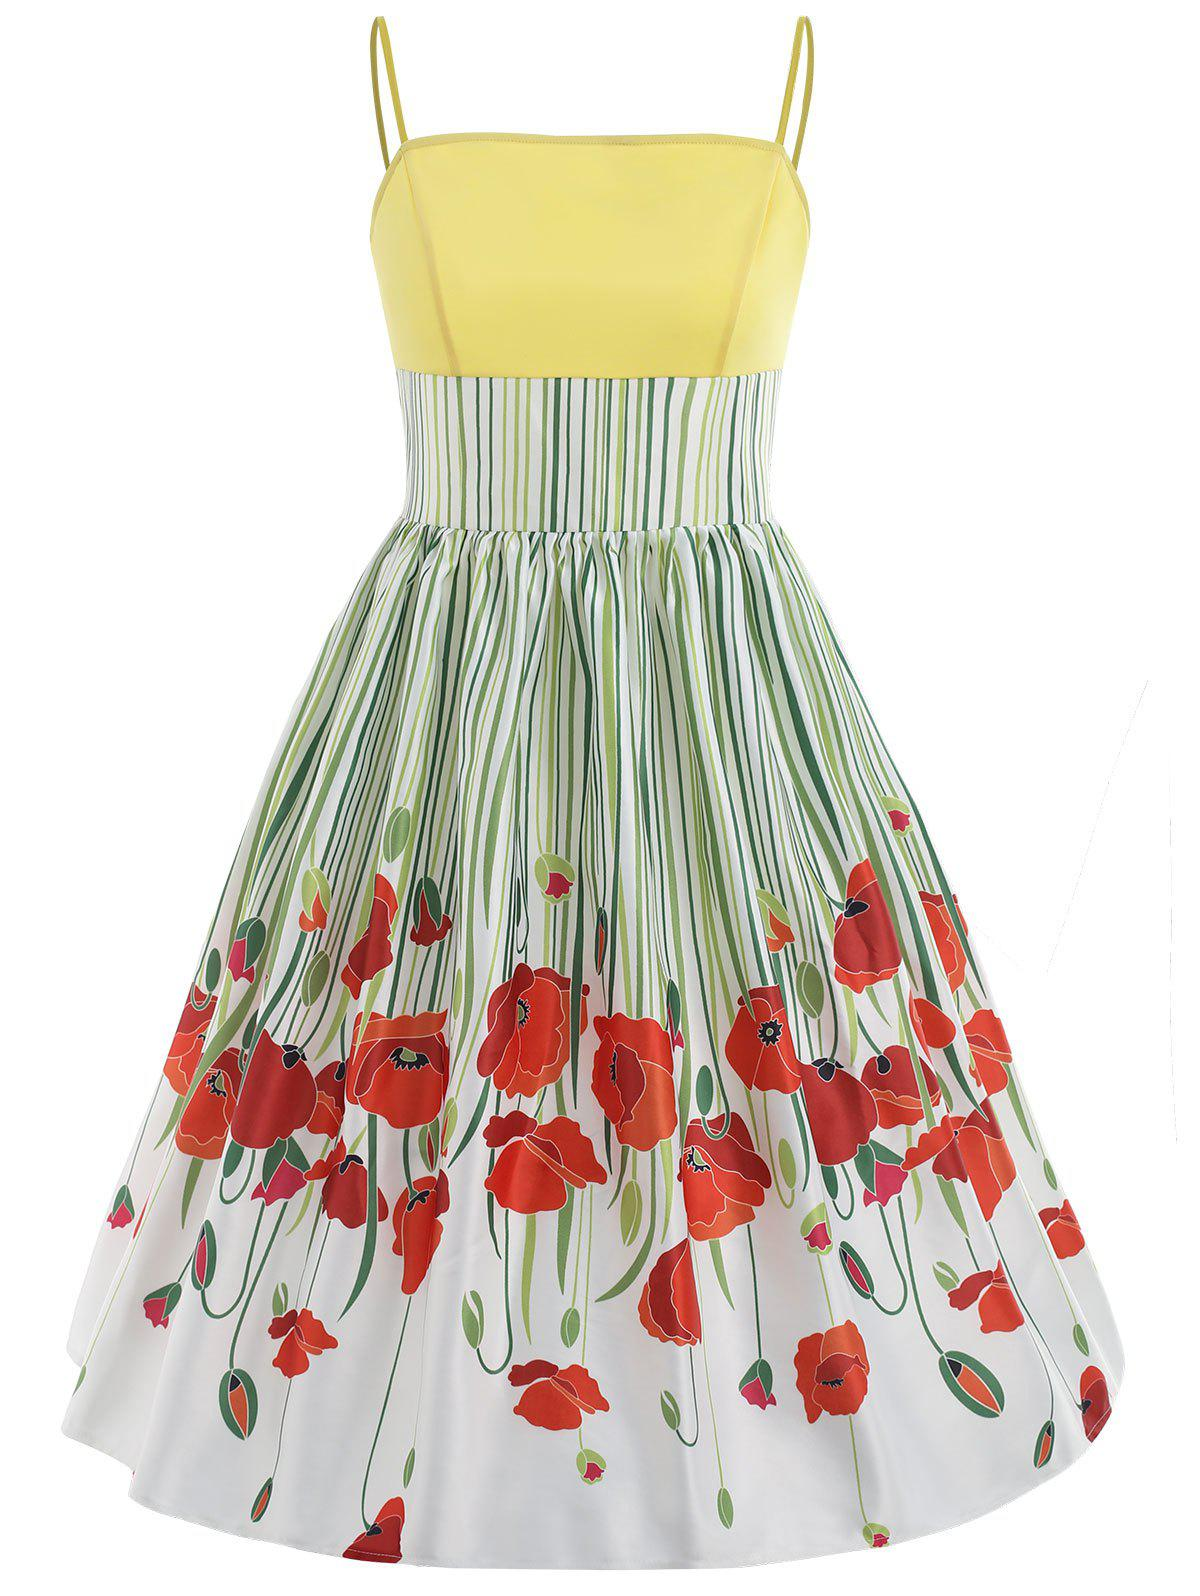 Discount Floral Print Striped Swing Dress